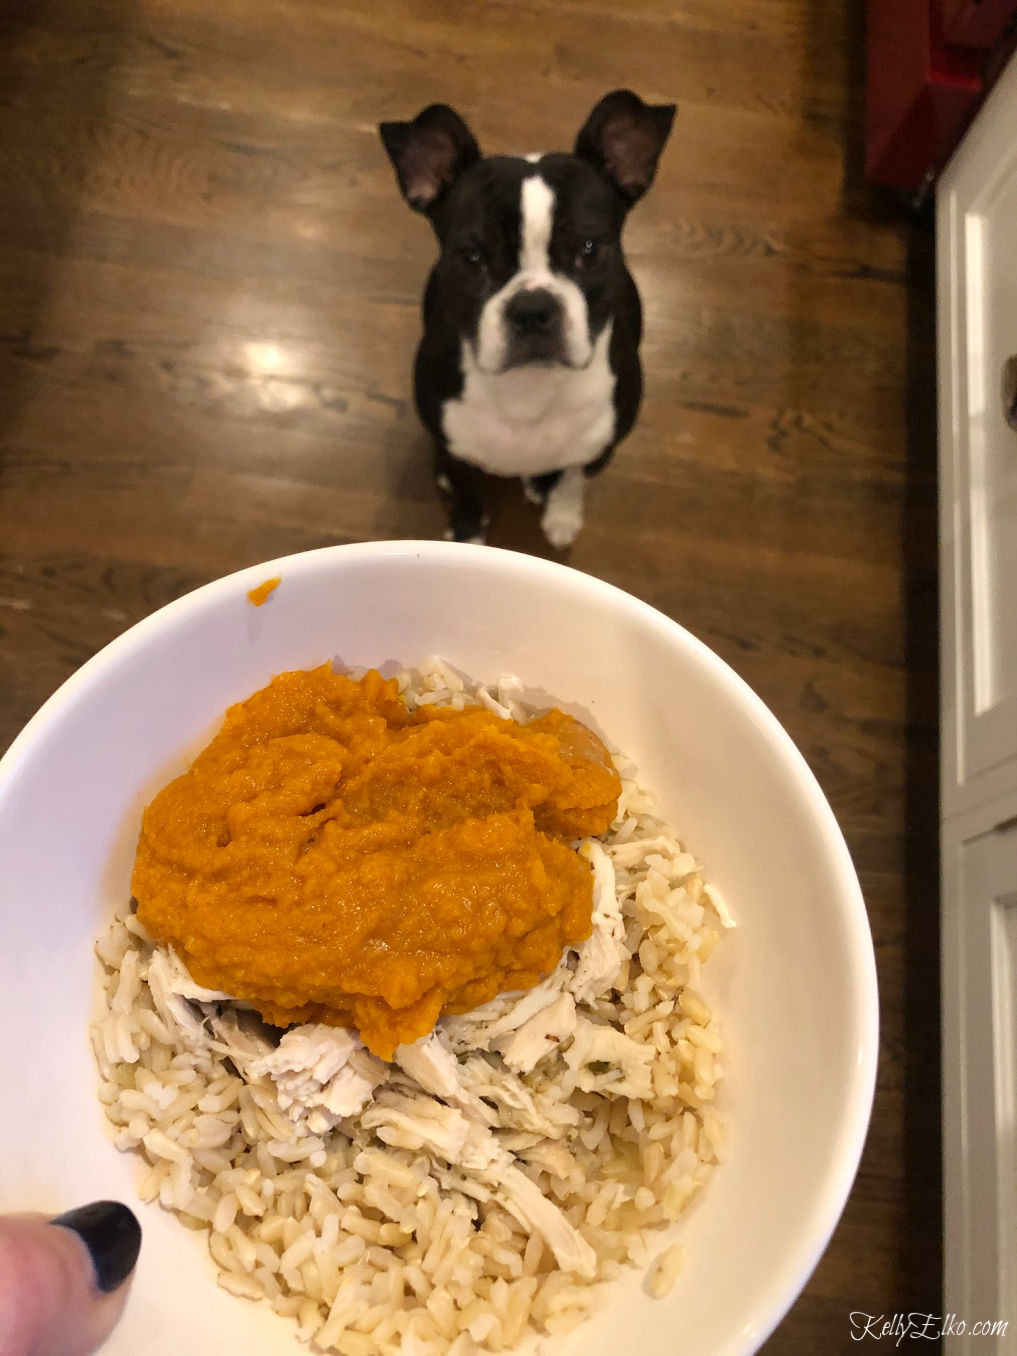 Pumpkin puree has lots of fiber for your dog kellyelko.com #dogs #dogfood #bostonterrier